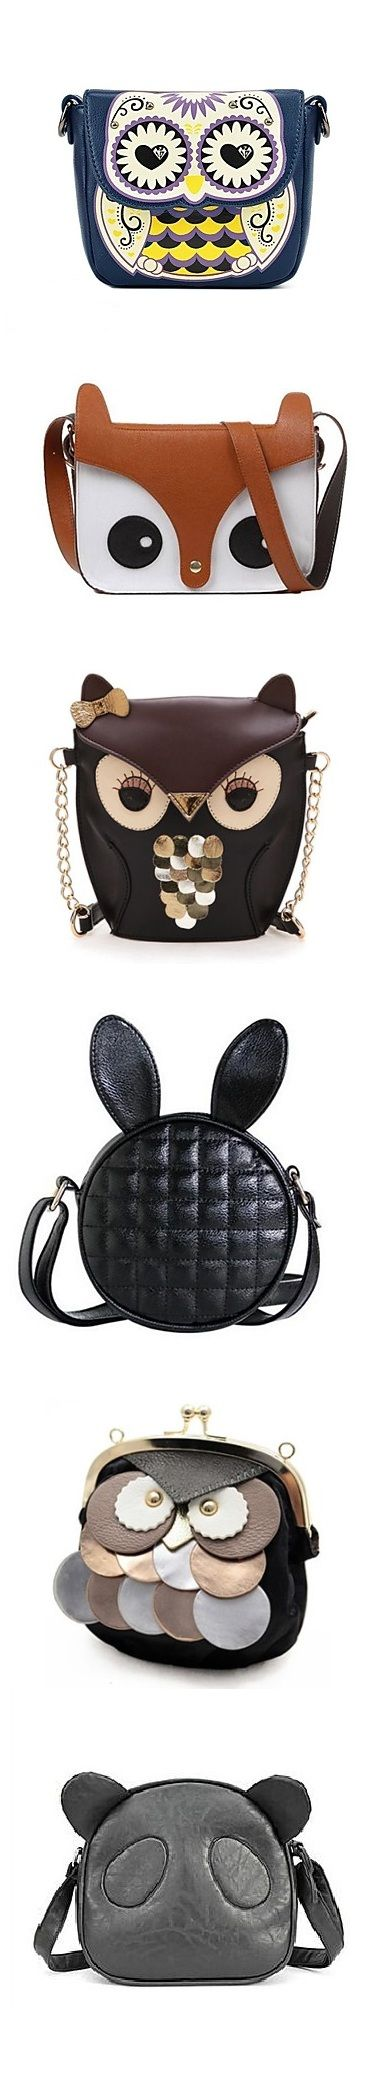 14 Best Mochila Bolso Images On Pinterest Wallets Clutch Bags And Freckles Backpack Owl Blue Pink Tas Bayi Those Are The Cutest Clutches Ever An A Rabbit